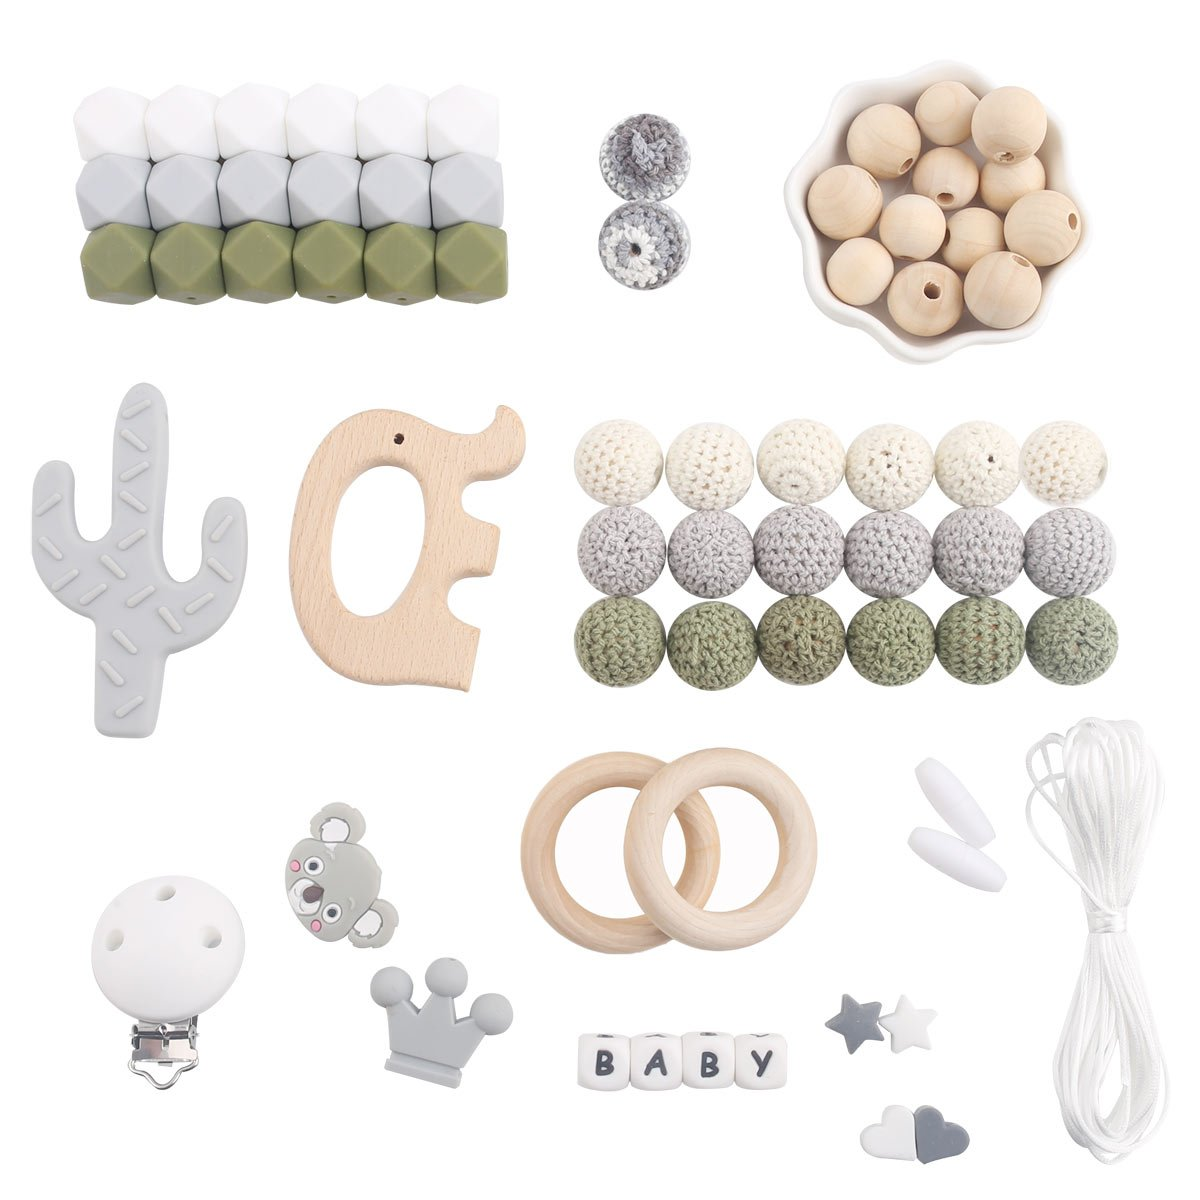 XD-TZ009 Baby Silicone Teething Beads Crochet Wooden Beads Silicone Rings BPA Free Chew Beads DIY Crafts Nursing Necklace and Bracelet Jewelry Pacifier Clip Pink Series